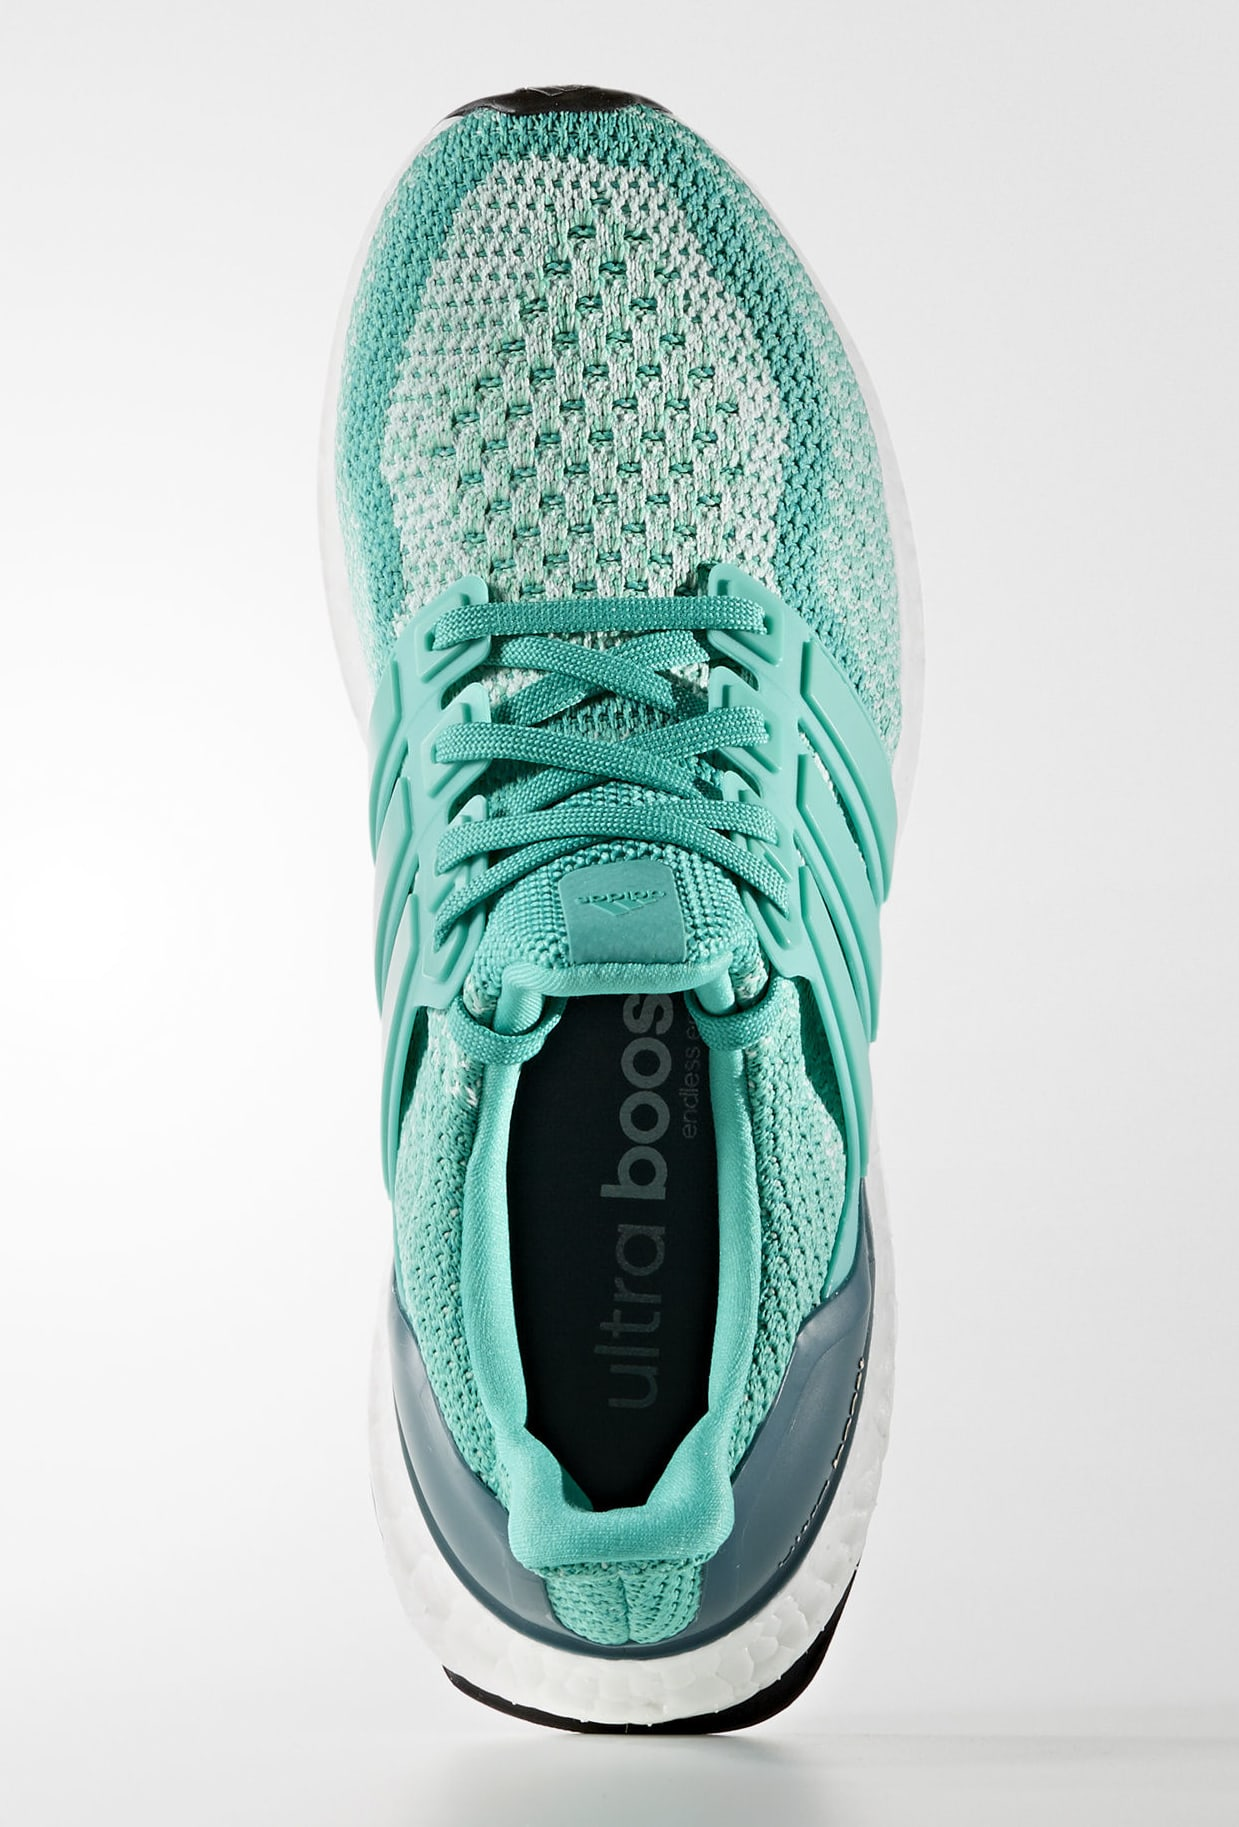 3e2b3fcfa discount adidas ultra boost shock mint unboxing on feet 30a1a de7a0  low  price image via adidas adidas womens ultra boost 2 0 shock mint 34b5d b47ff